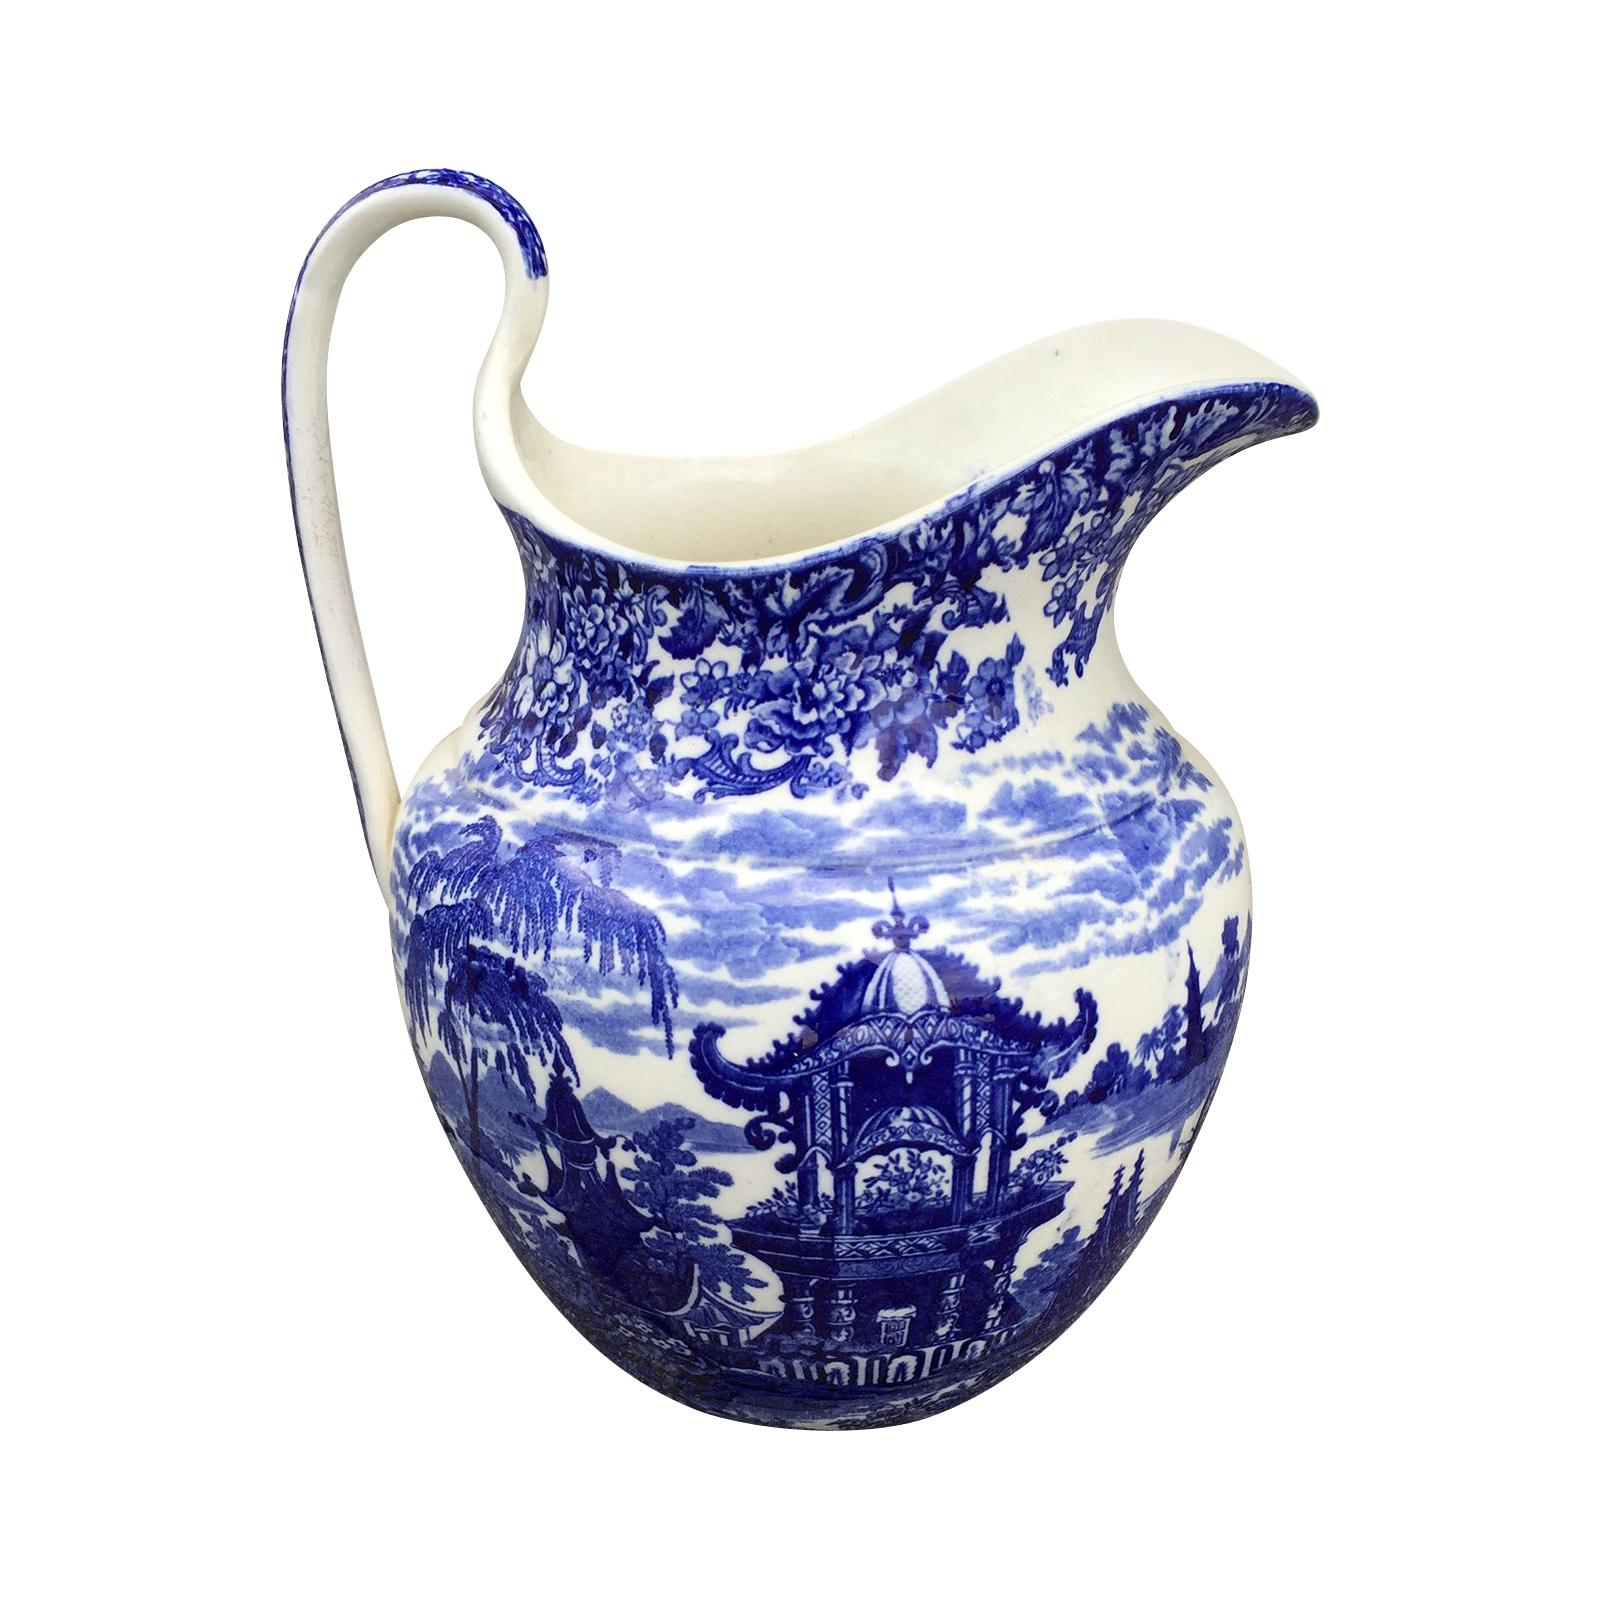 Early 19th Century Wedgwood Blue and White Porcelain Pitcher, Embossed Mark